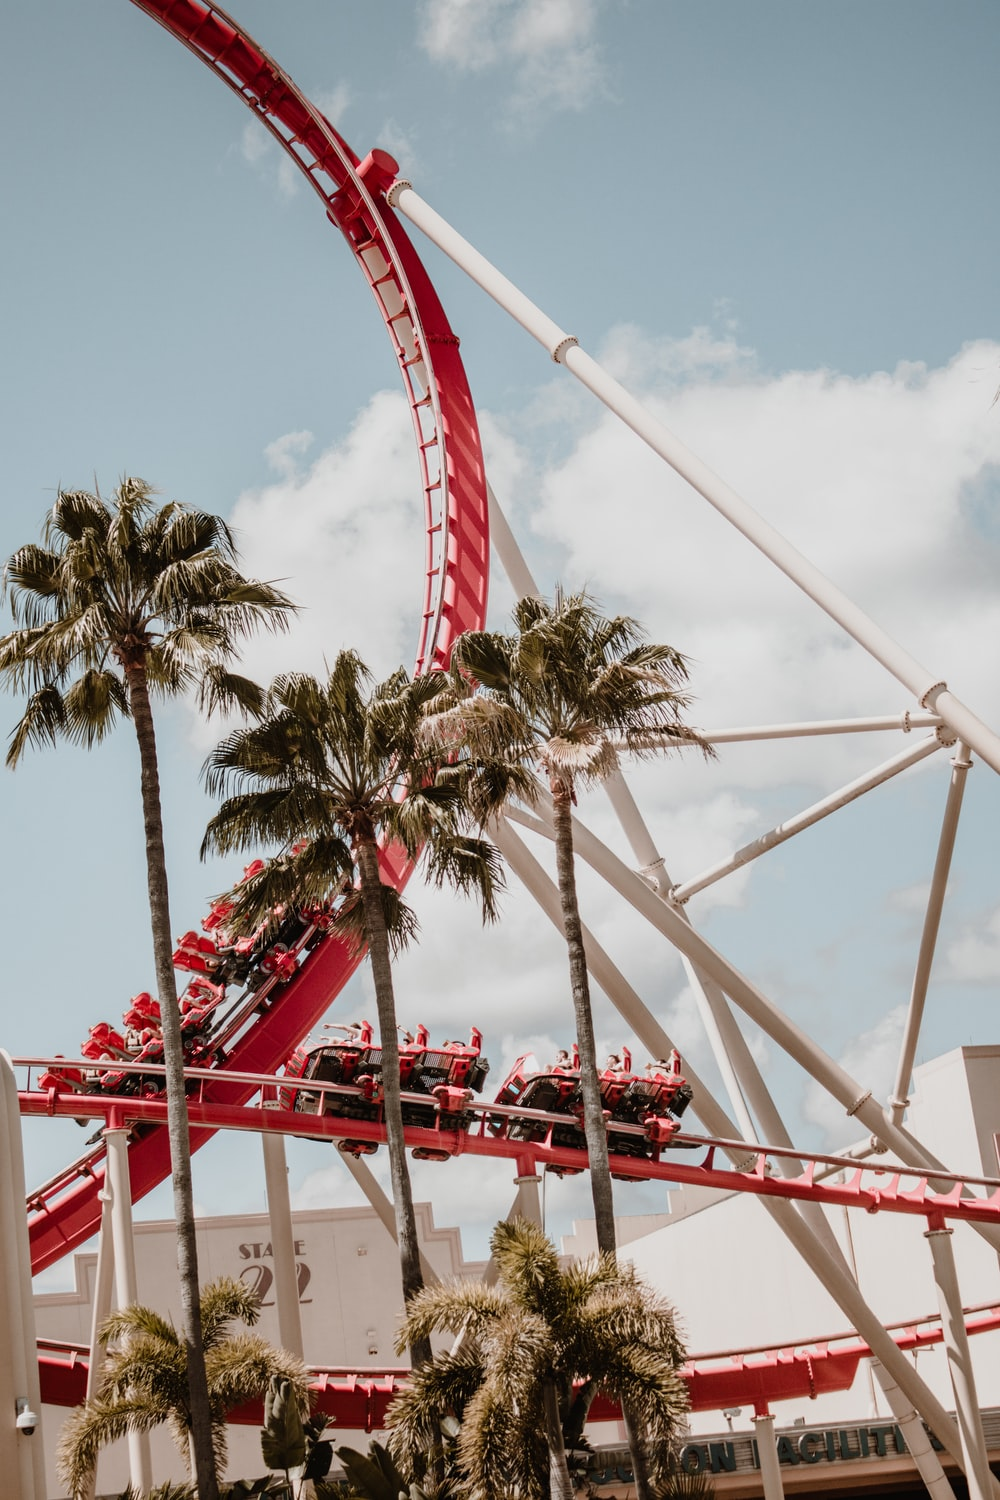 roller coaster near palm trees